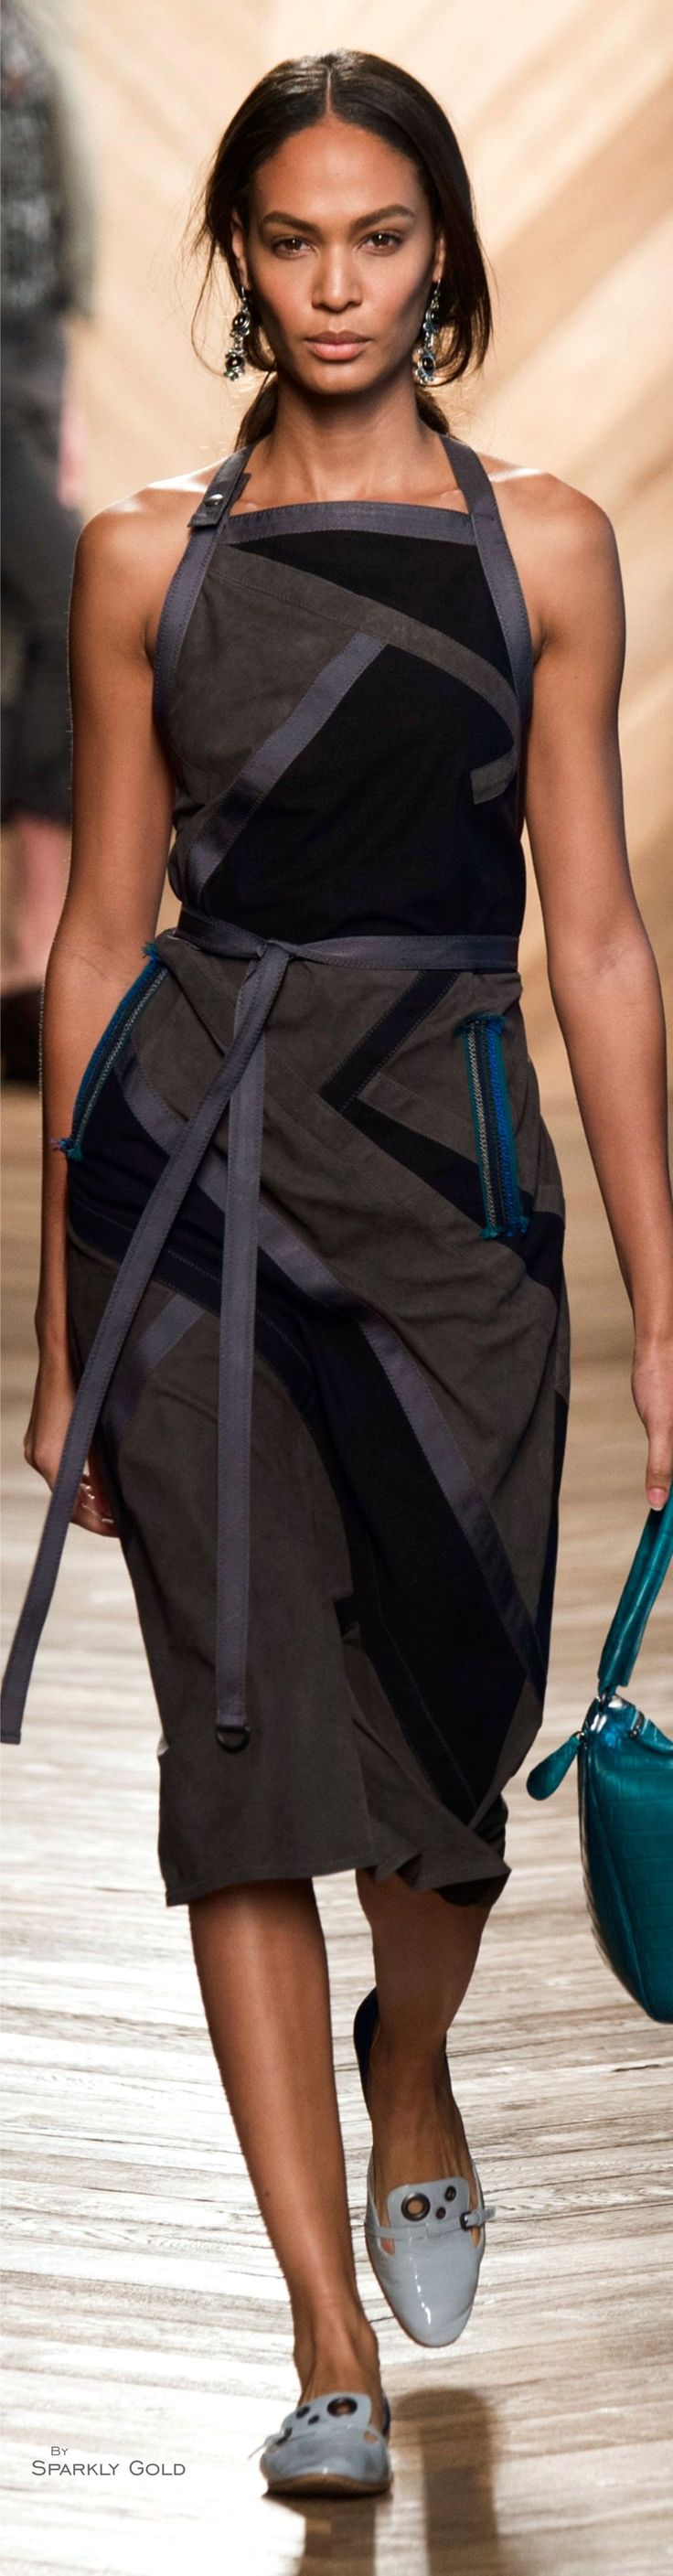 "Bottega Veneta Spring 2016 ""And the LORD said to Moses, ""Go to the people and consecrate them today and tomorrow. Have them wash their clothes."" Exodus 19:10"